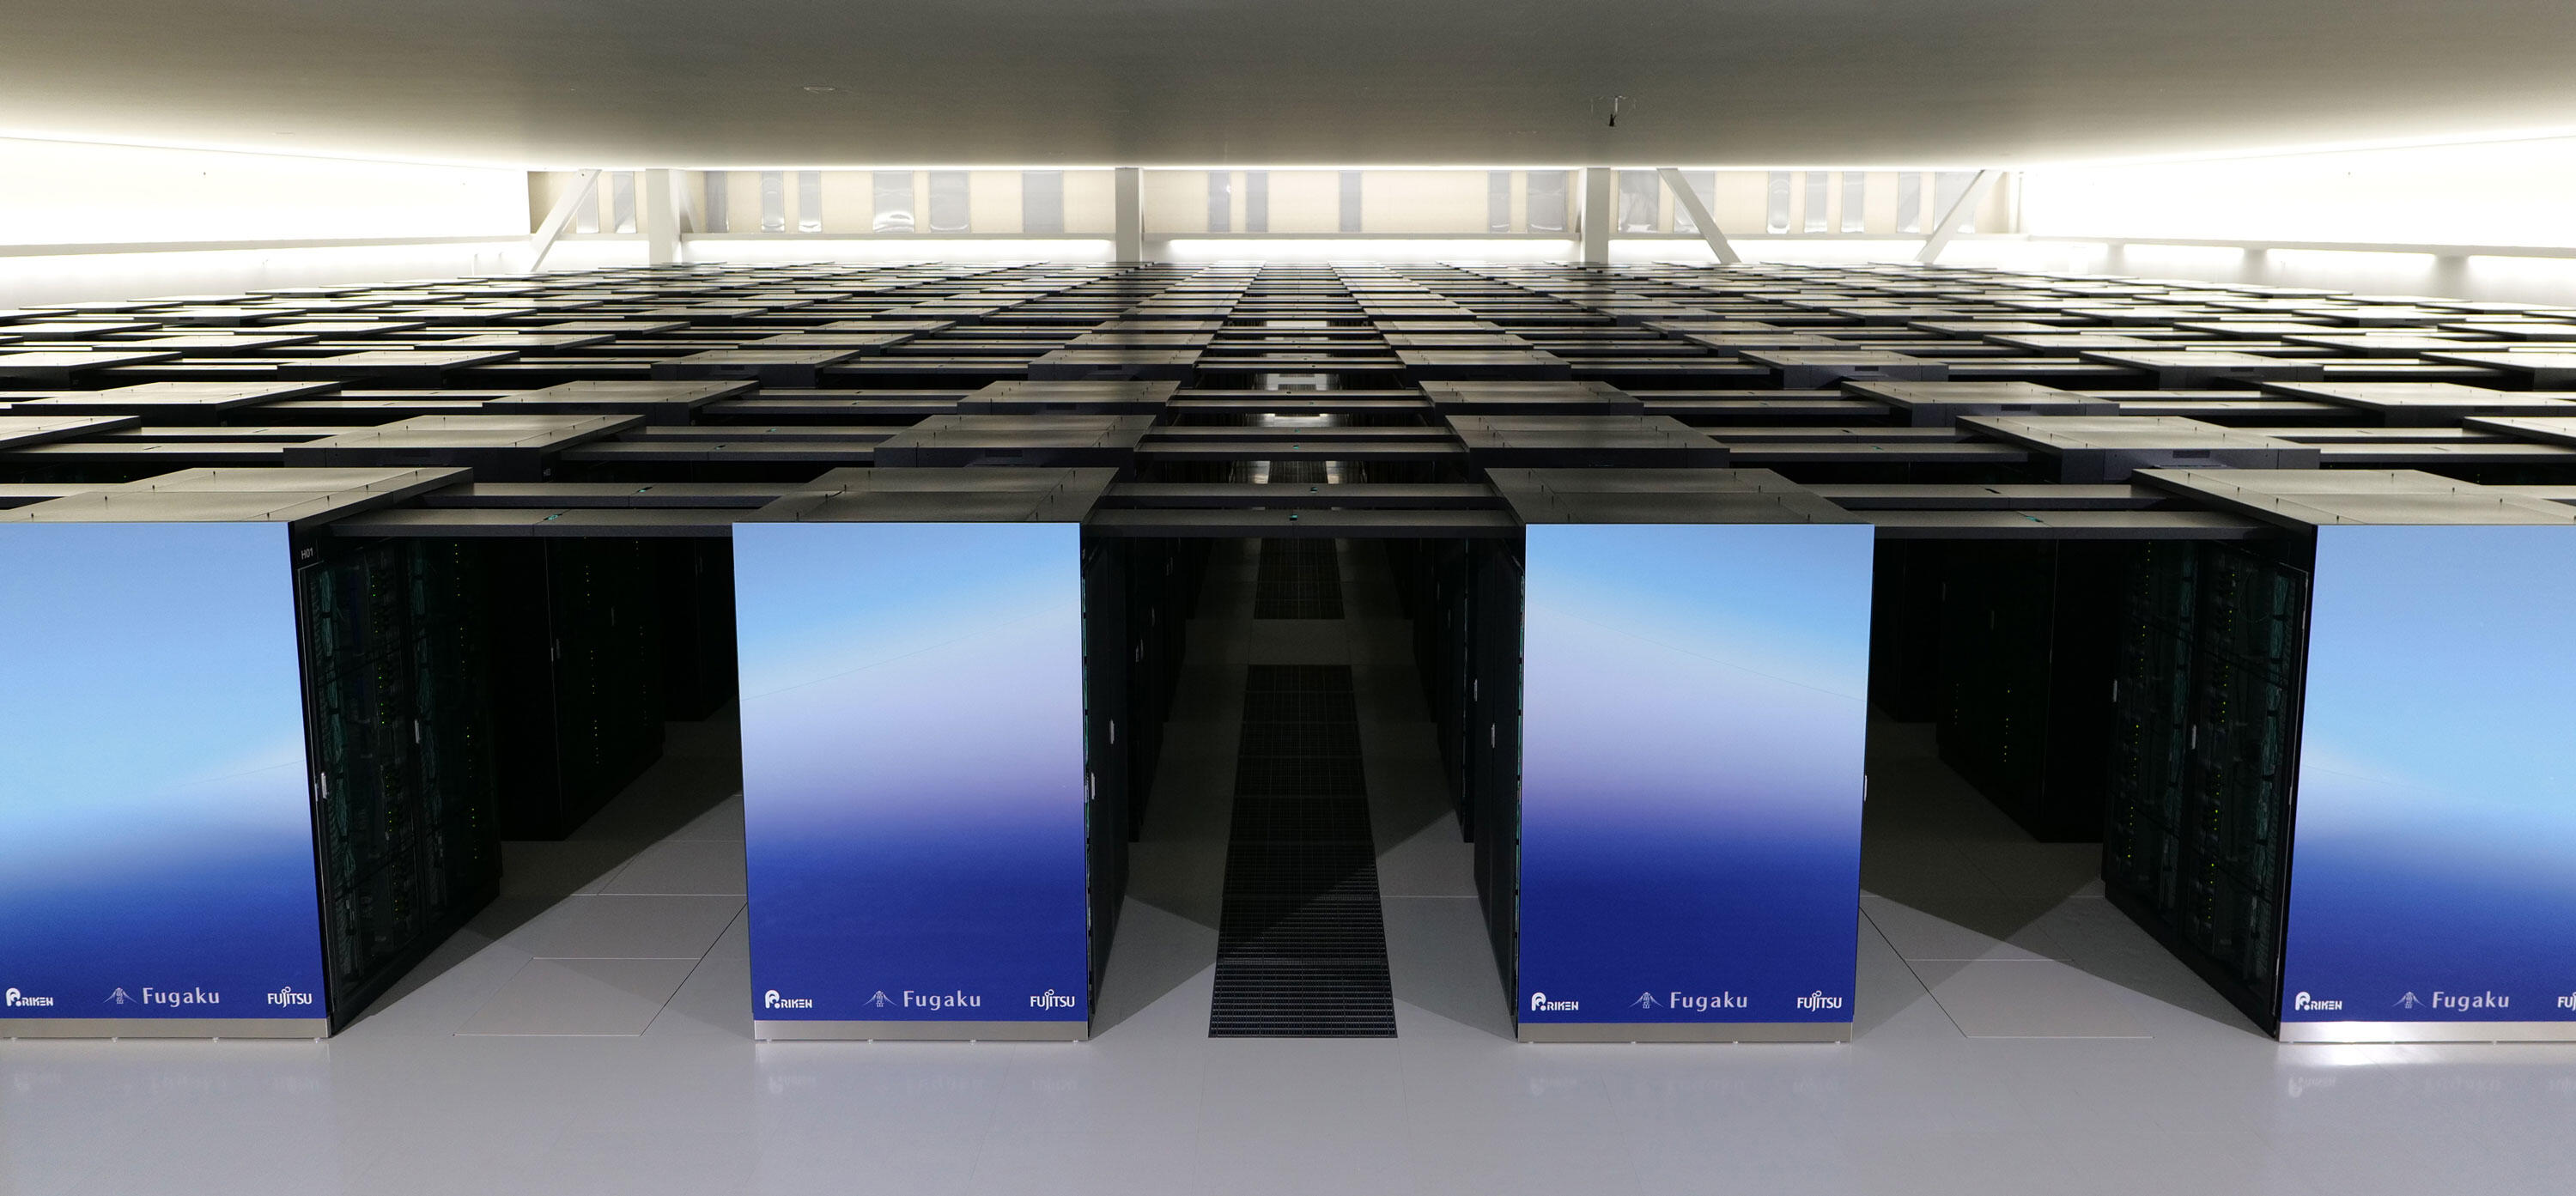 The Fugaku supercomputer at Japan's RIKEN center, named the world's fastest machine in 2020, uses Fujitsu-designed Arm processors.